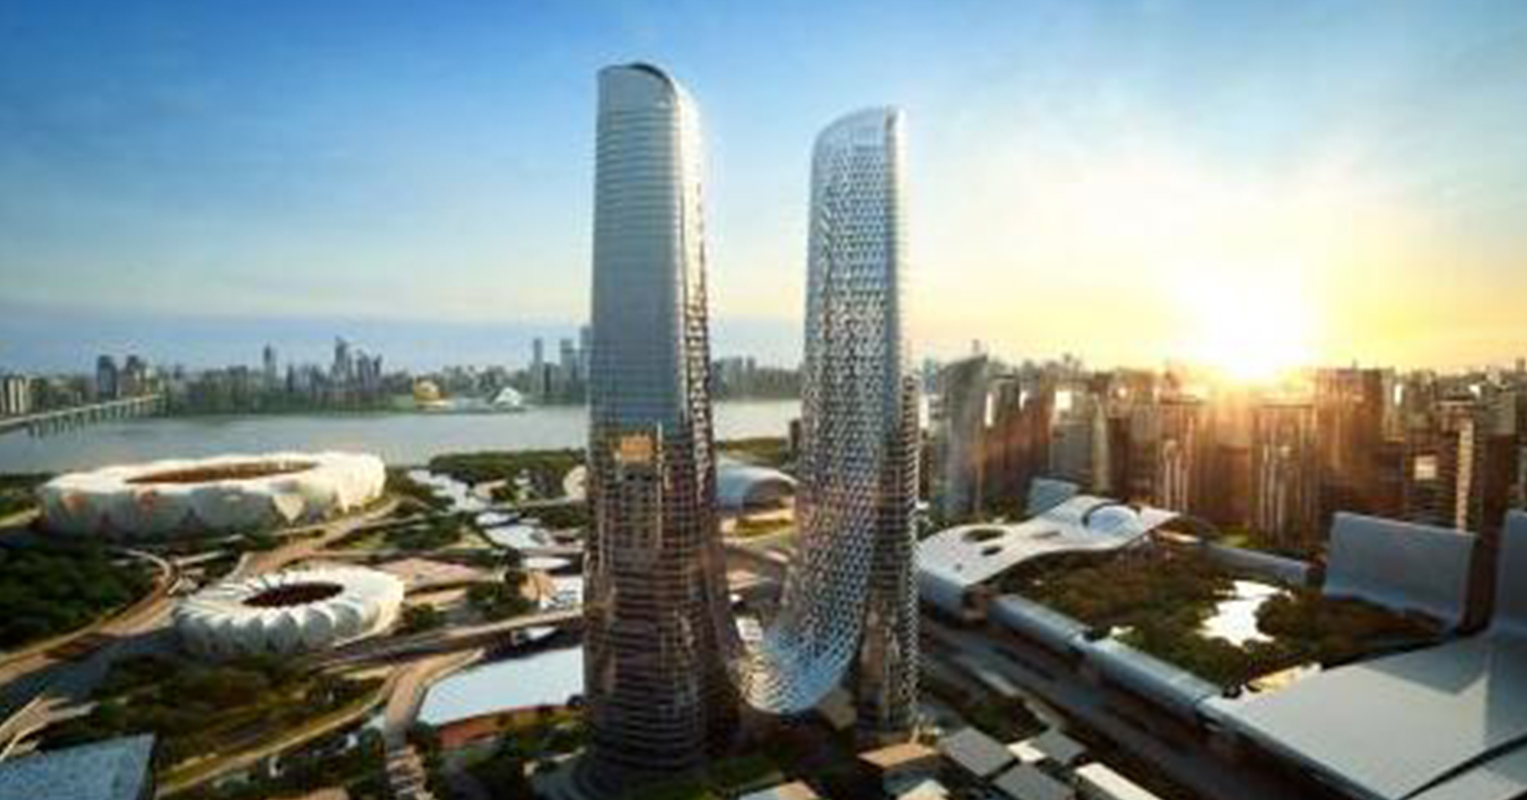 Supmea products are used in the tallest building in Hangzhou